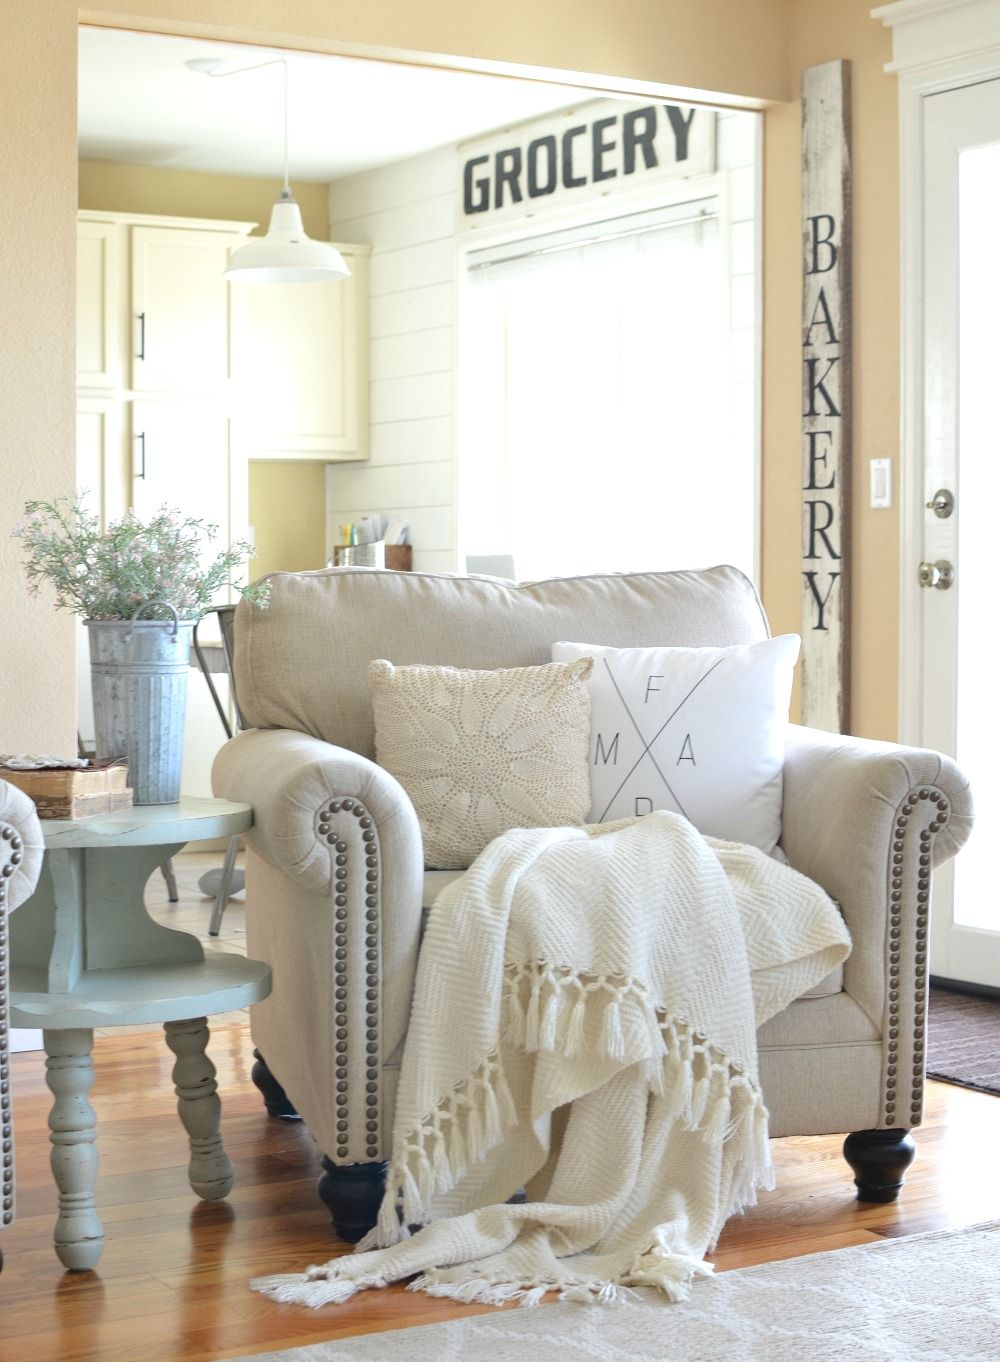 Refreshed Modern Farmhouse Living Room - Sarah Joy  Farmhouse